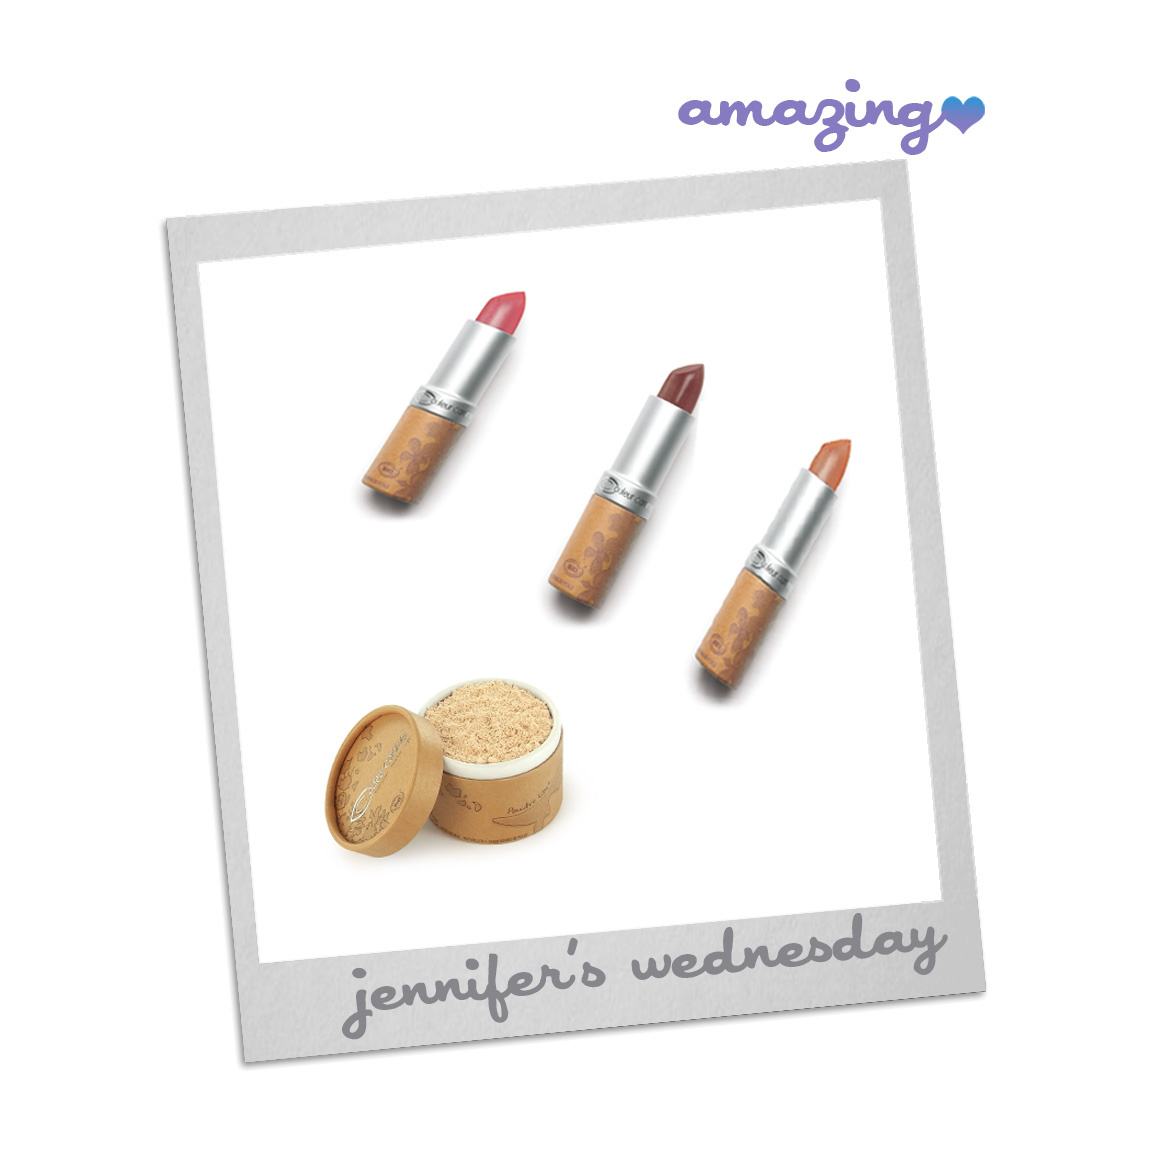 Couleurcaramel_jennifer_lipstick_loosepowder_jpeg_blogimage.jpg